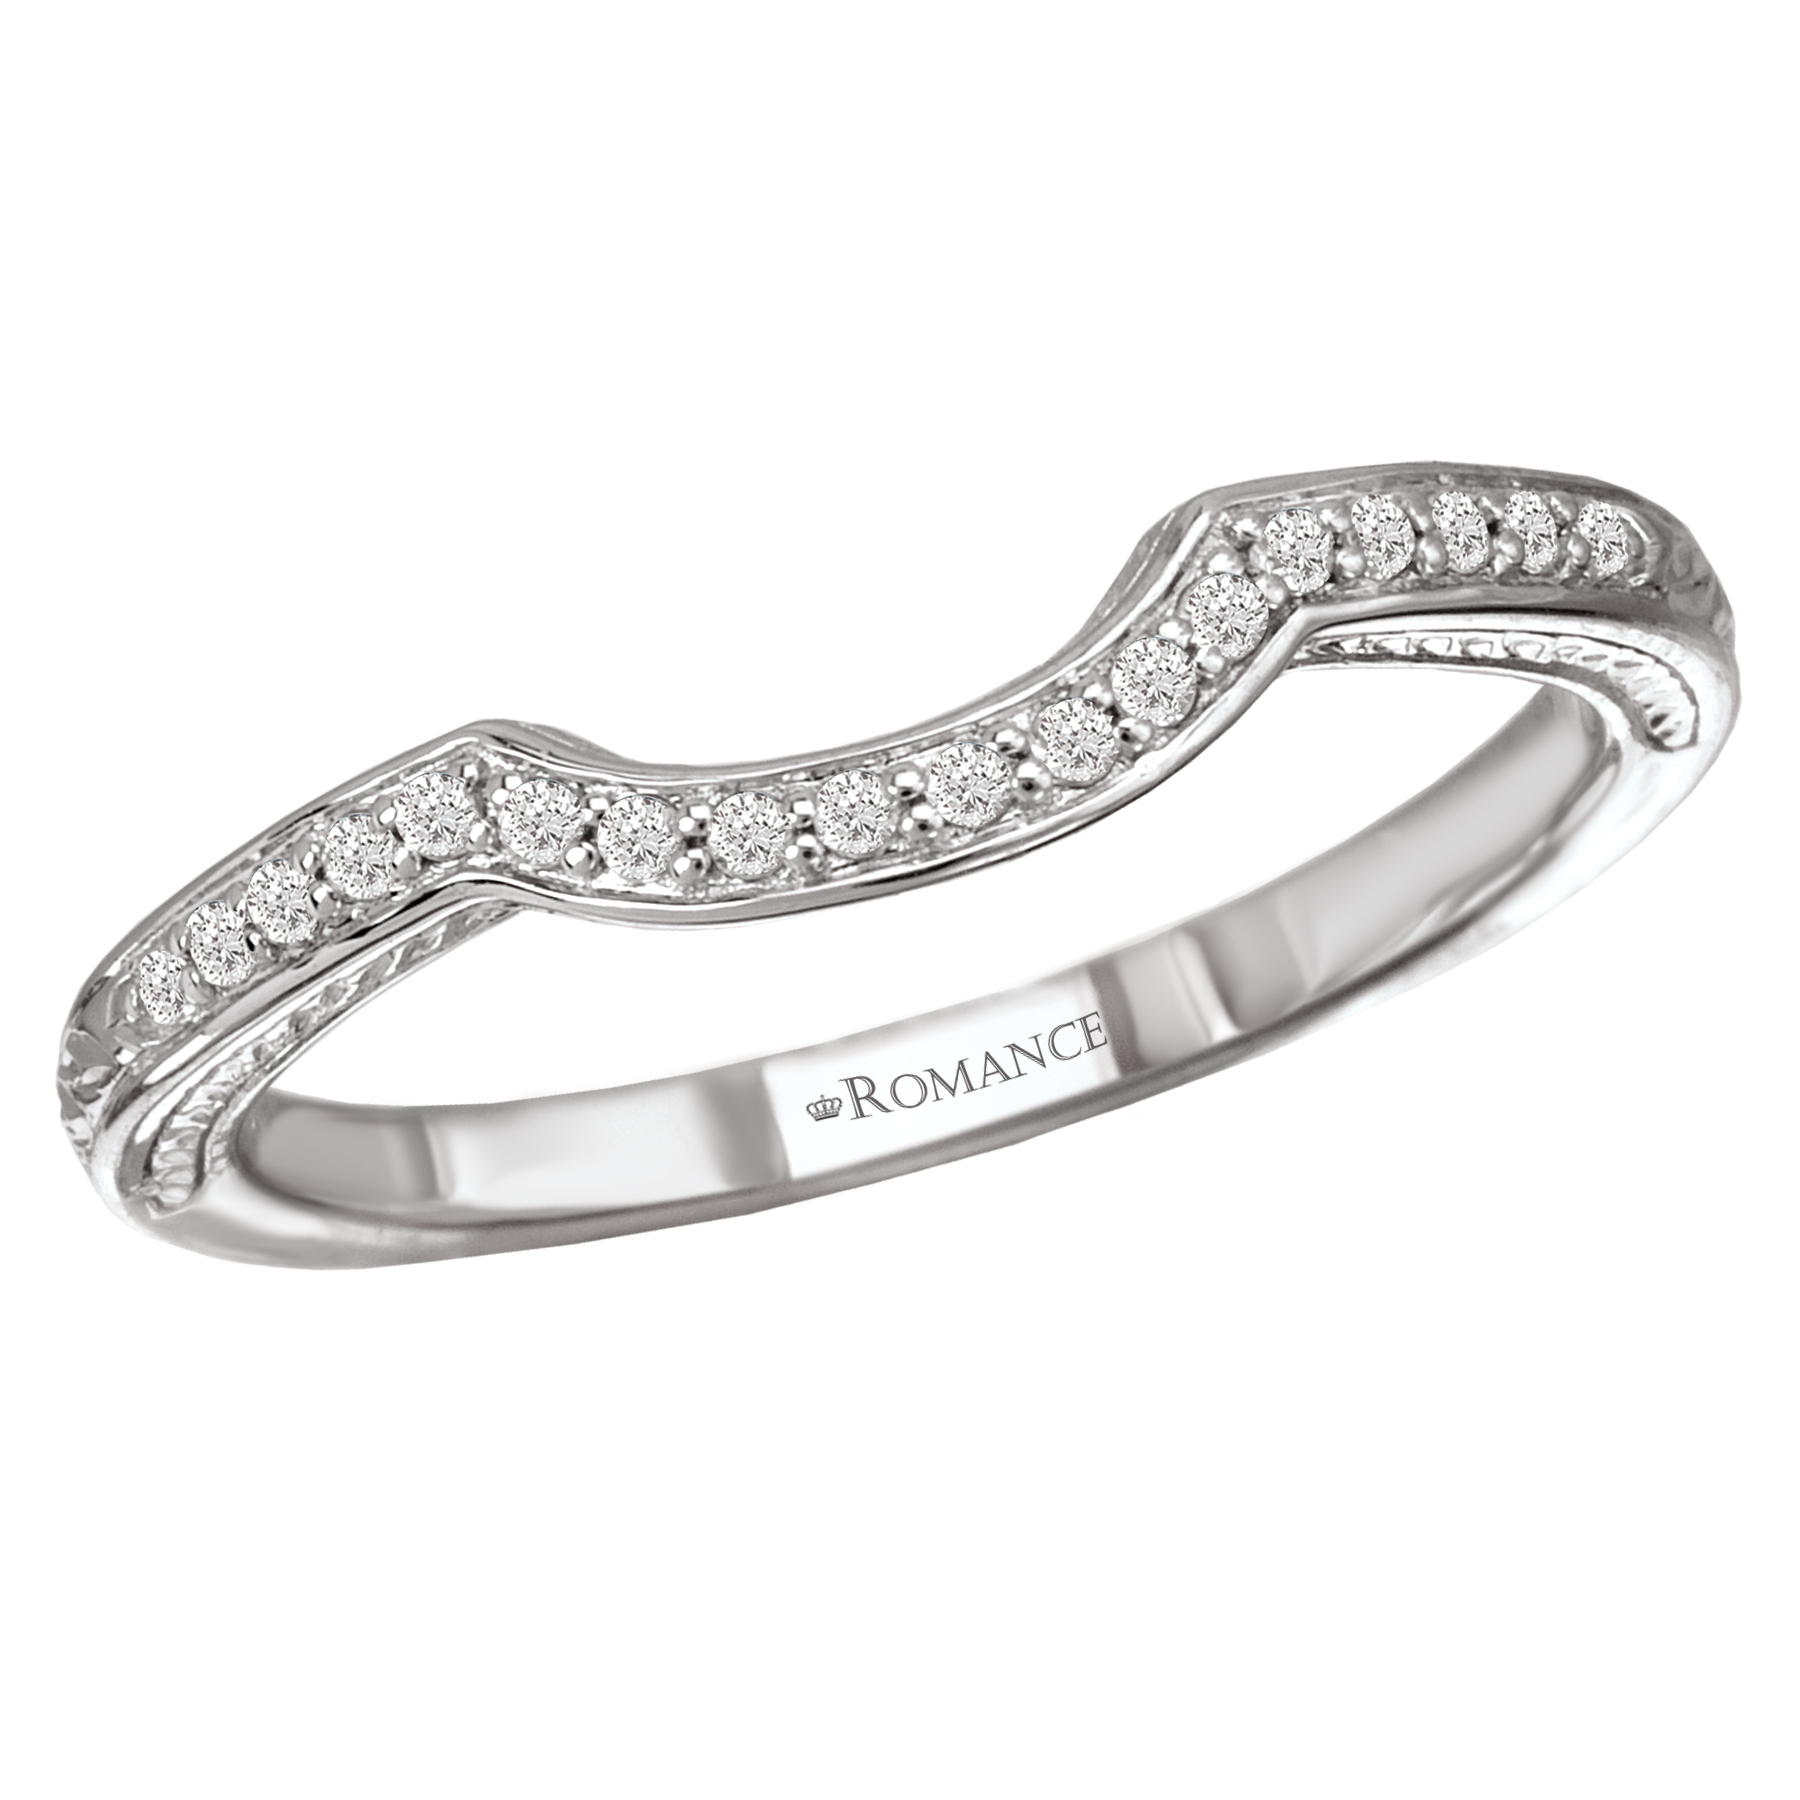 Romance Wedding Bands 117580-100W product image